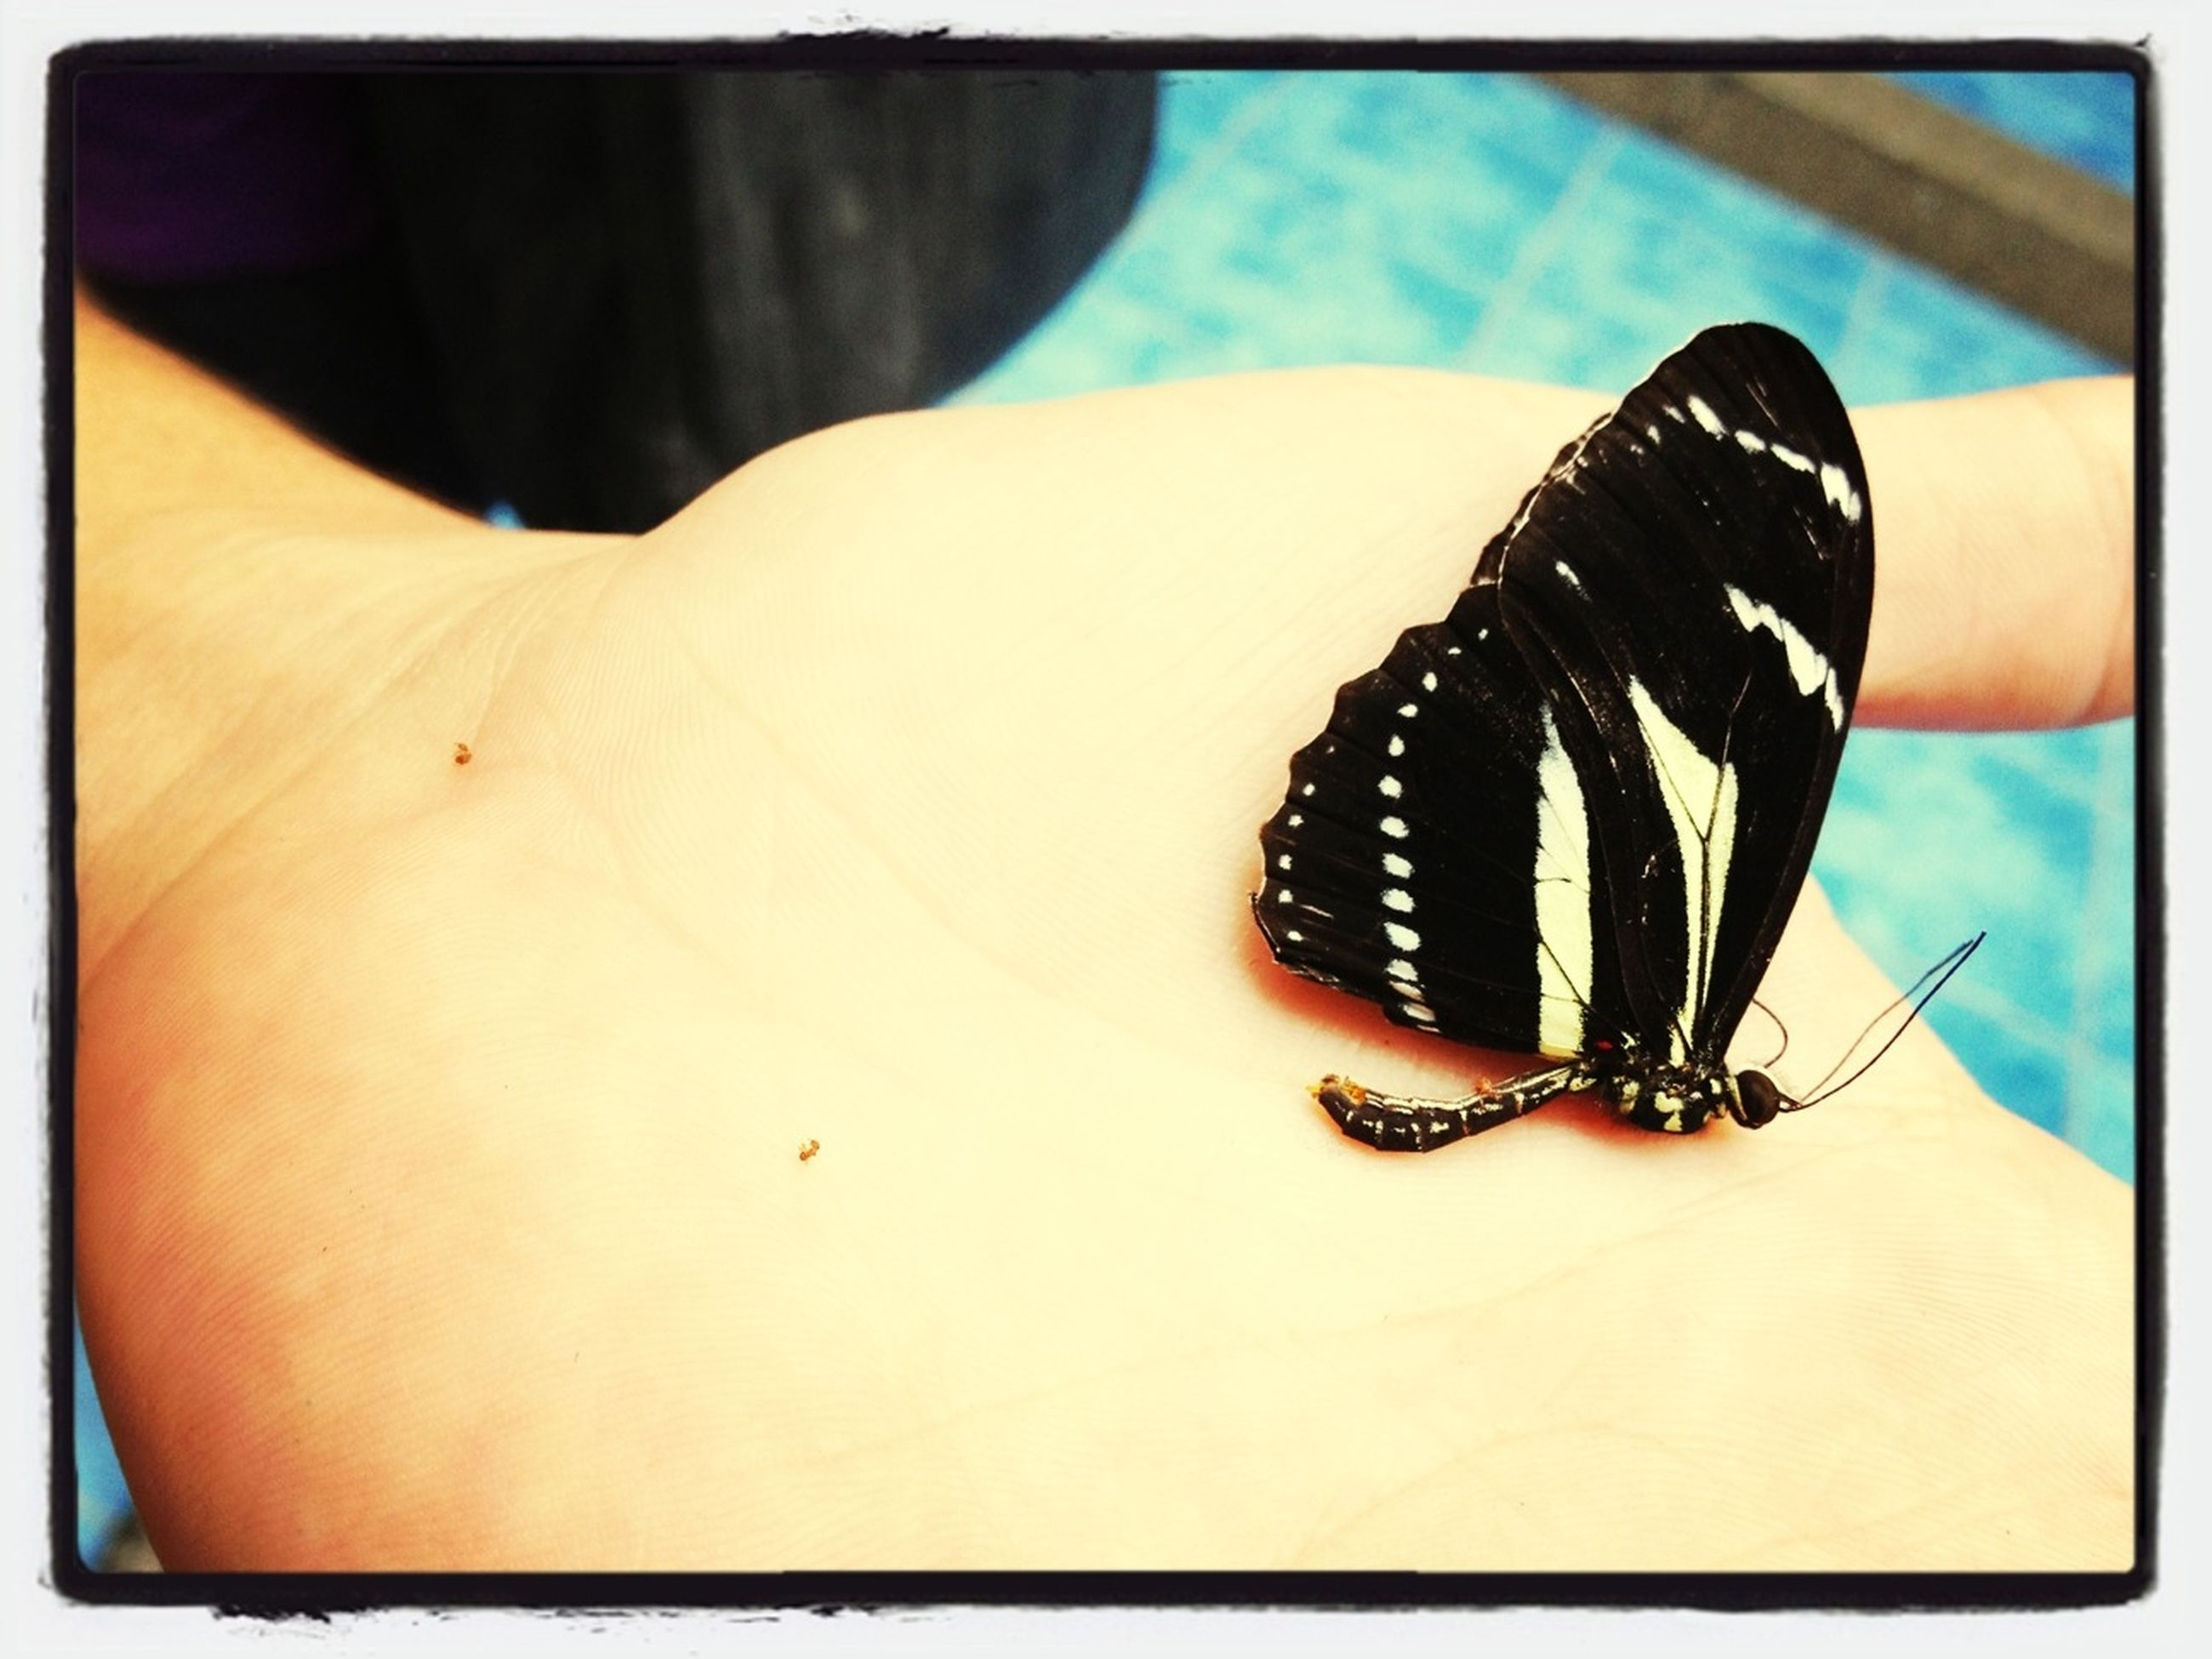 transfer print, insect, one animal, wildlife, close-up, animal themes, animals in the wild, auto post production filter, person, part of, human finger, focus on foreground, unrecognizable person, cropped, butterfly, holding, day